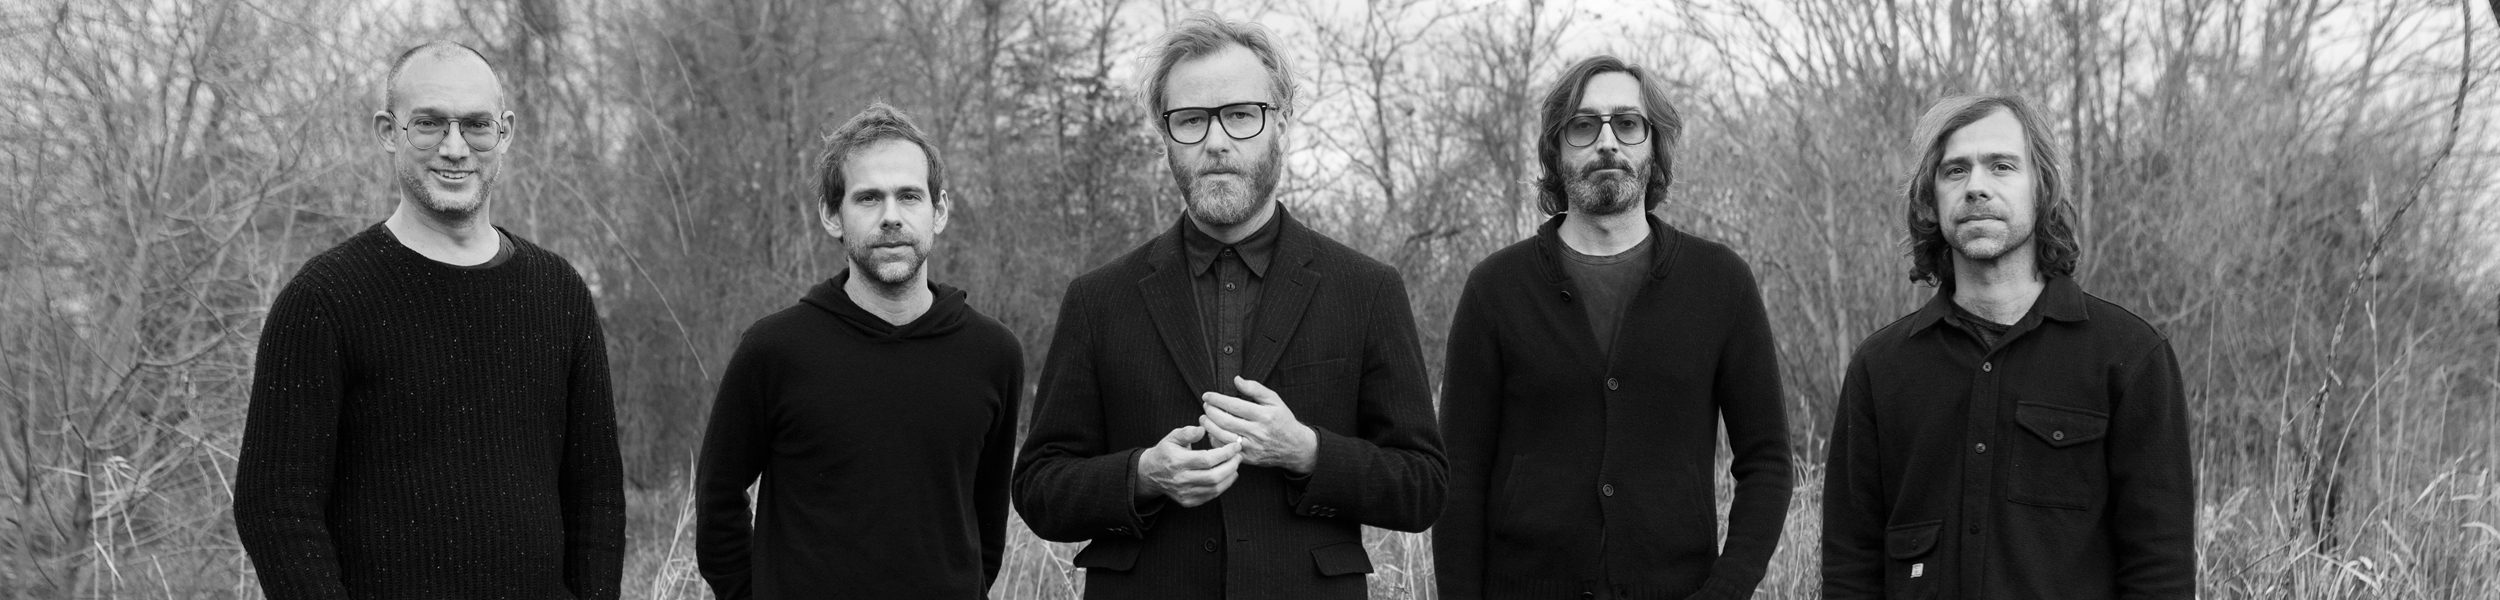 The National - The National 'High Violet' Expanded Edition details announced